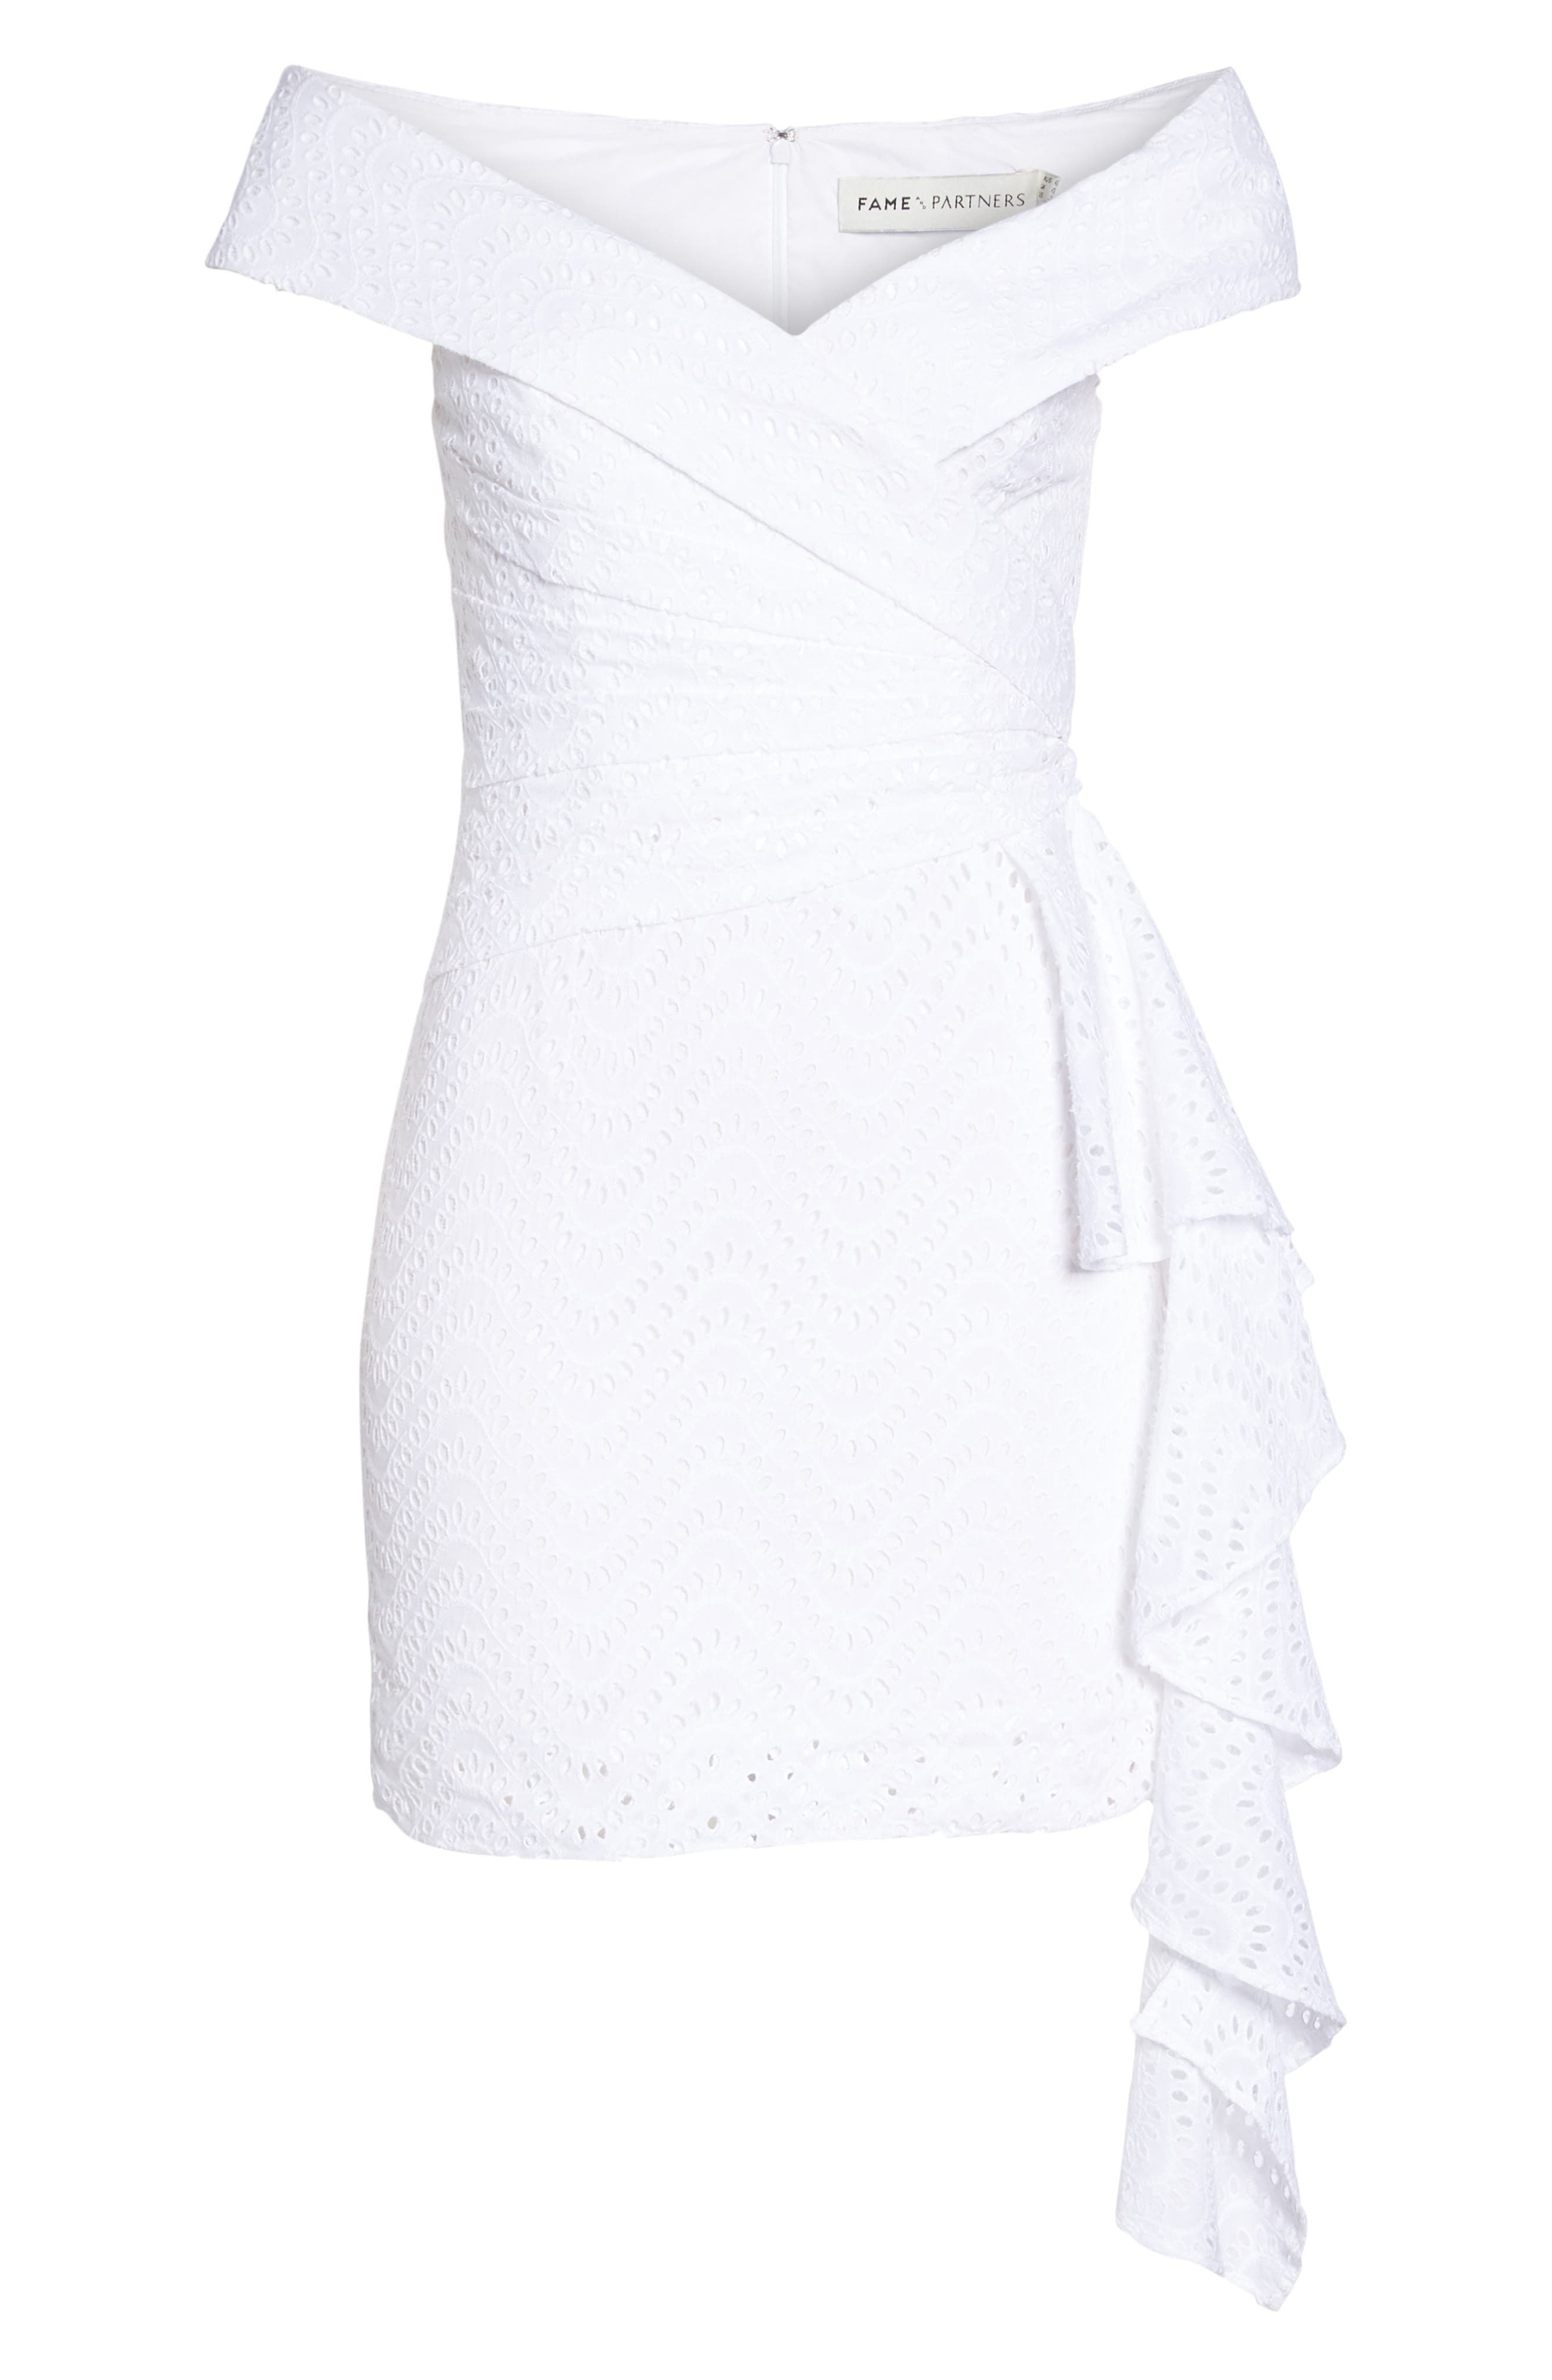 Mazzy Off the Shoulder Eyelet Dress,                             Alternate thumbnail 6, color,                             Ivory